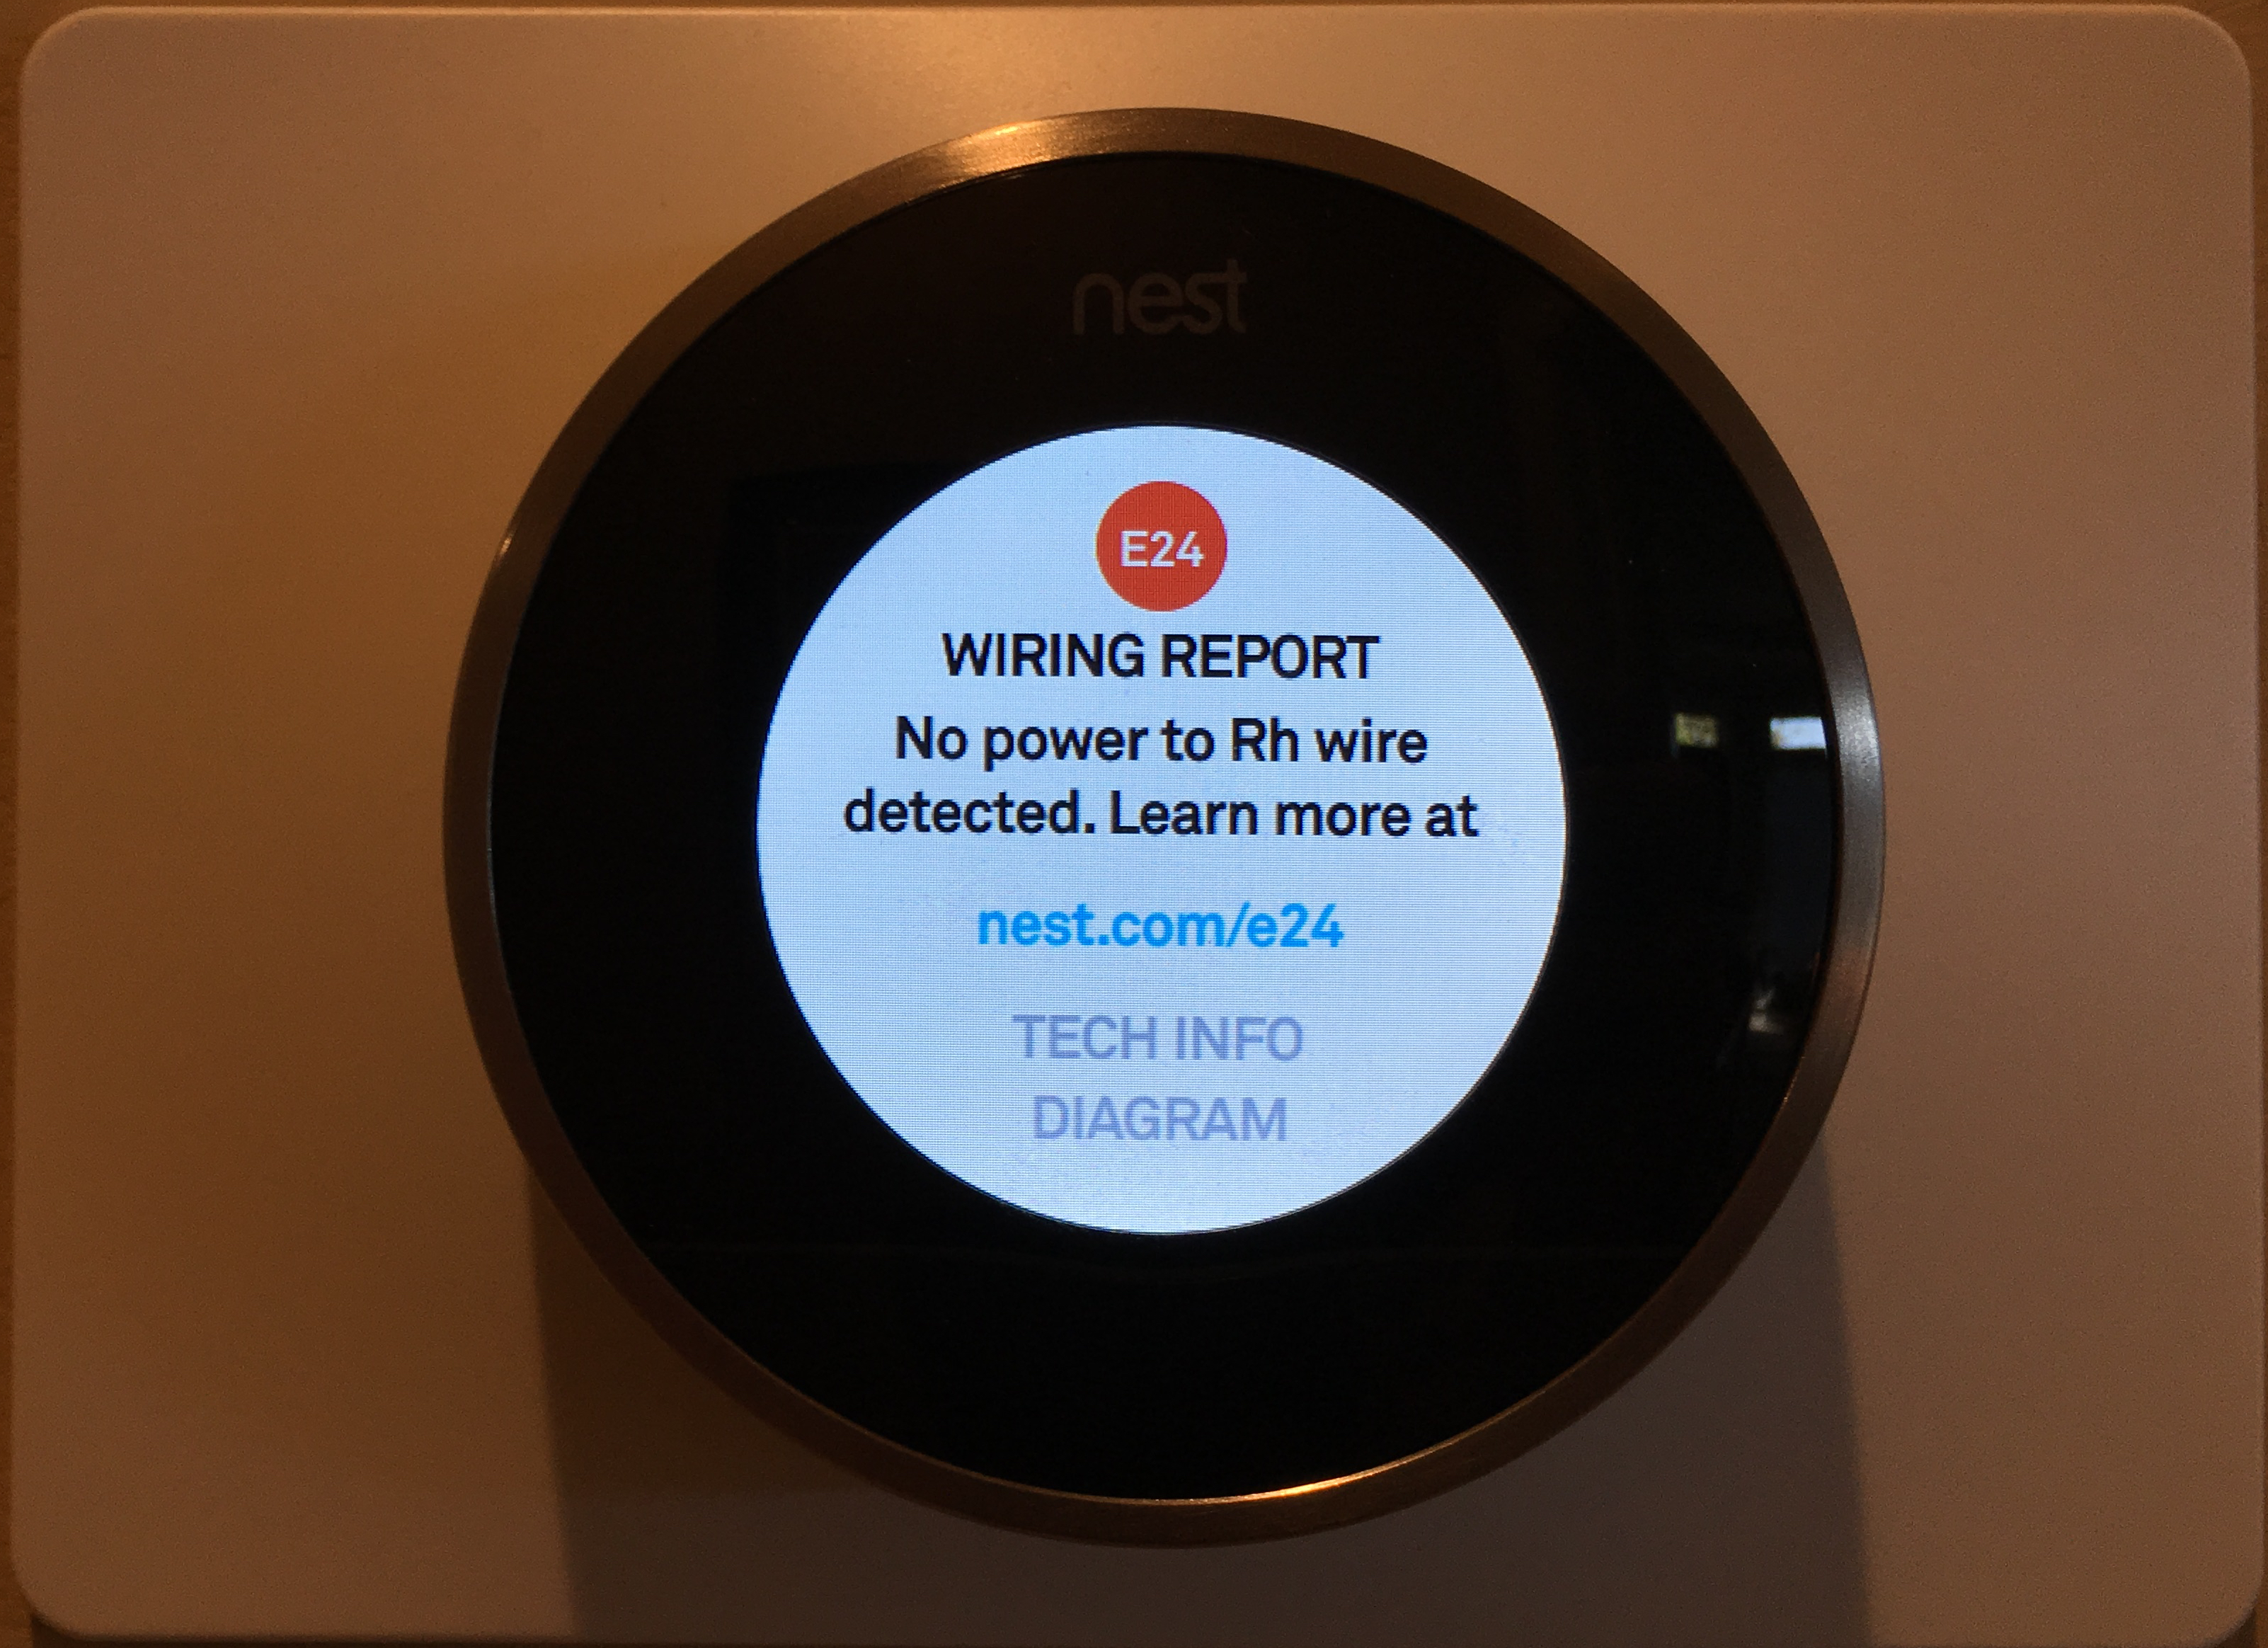 Nest Thermostat Wiring Error Message Wire Center Heat Pump Guide How To Repair No Power Rh Detected Due A Hapscout Com